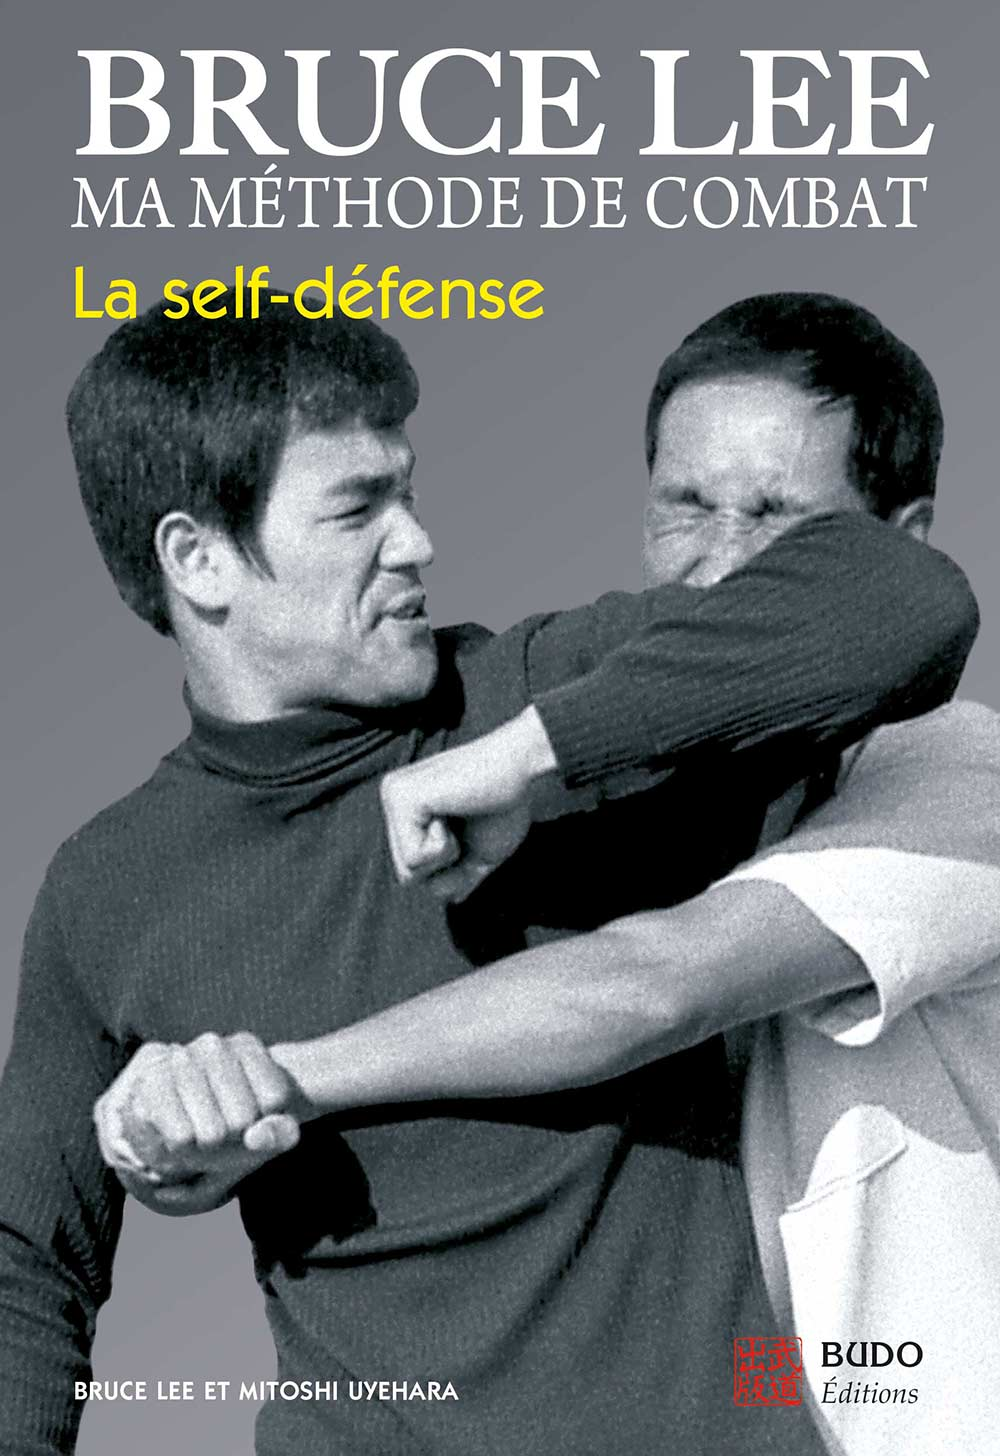 BRUCE LEE, MA MÉTHODE DE COMBAT, Self Défense